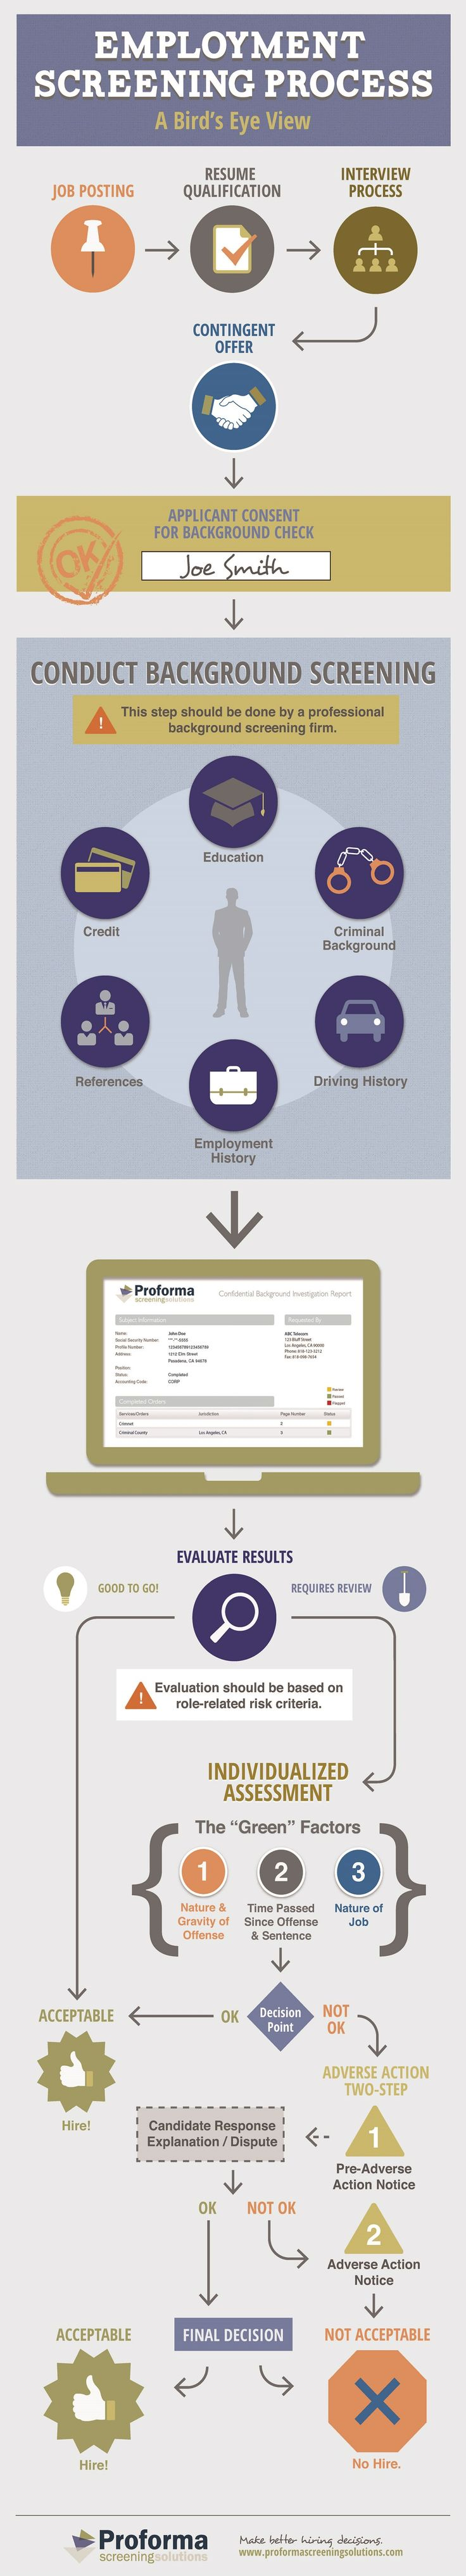 38 best job search images on pinterest job search career advice